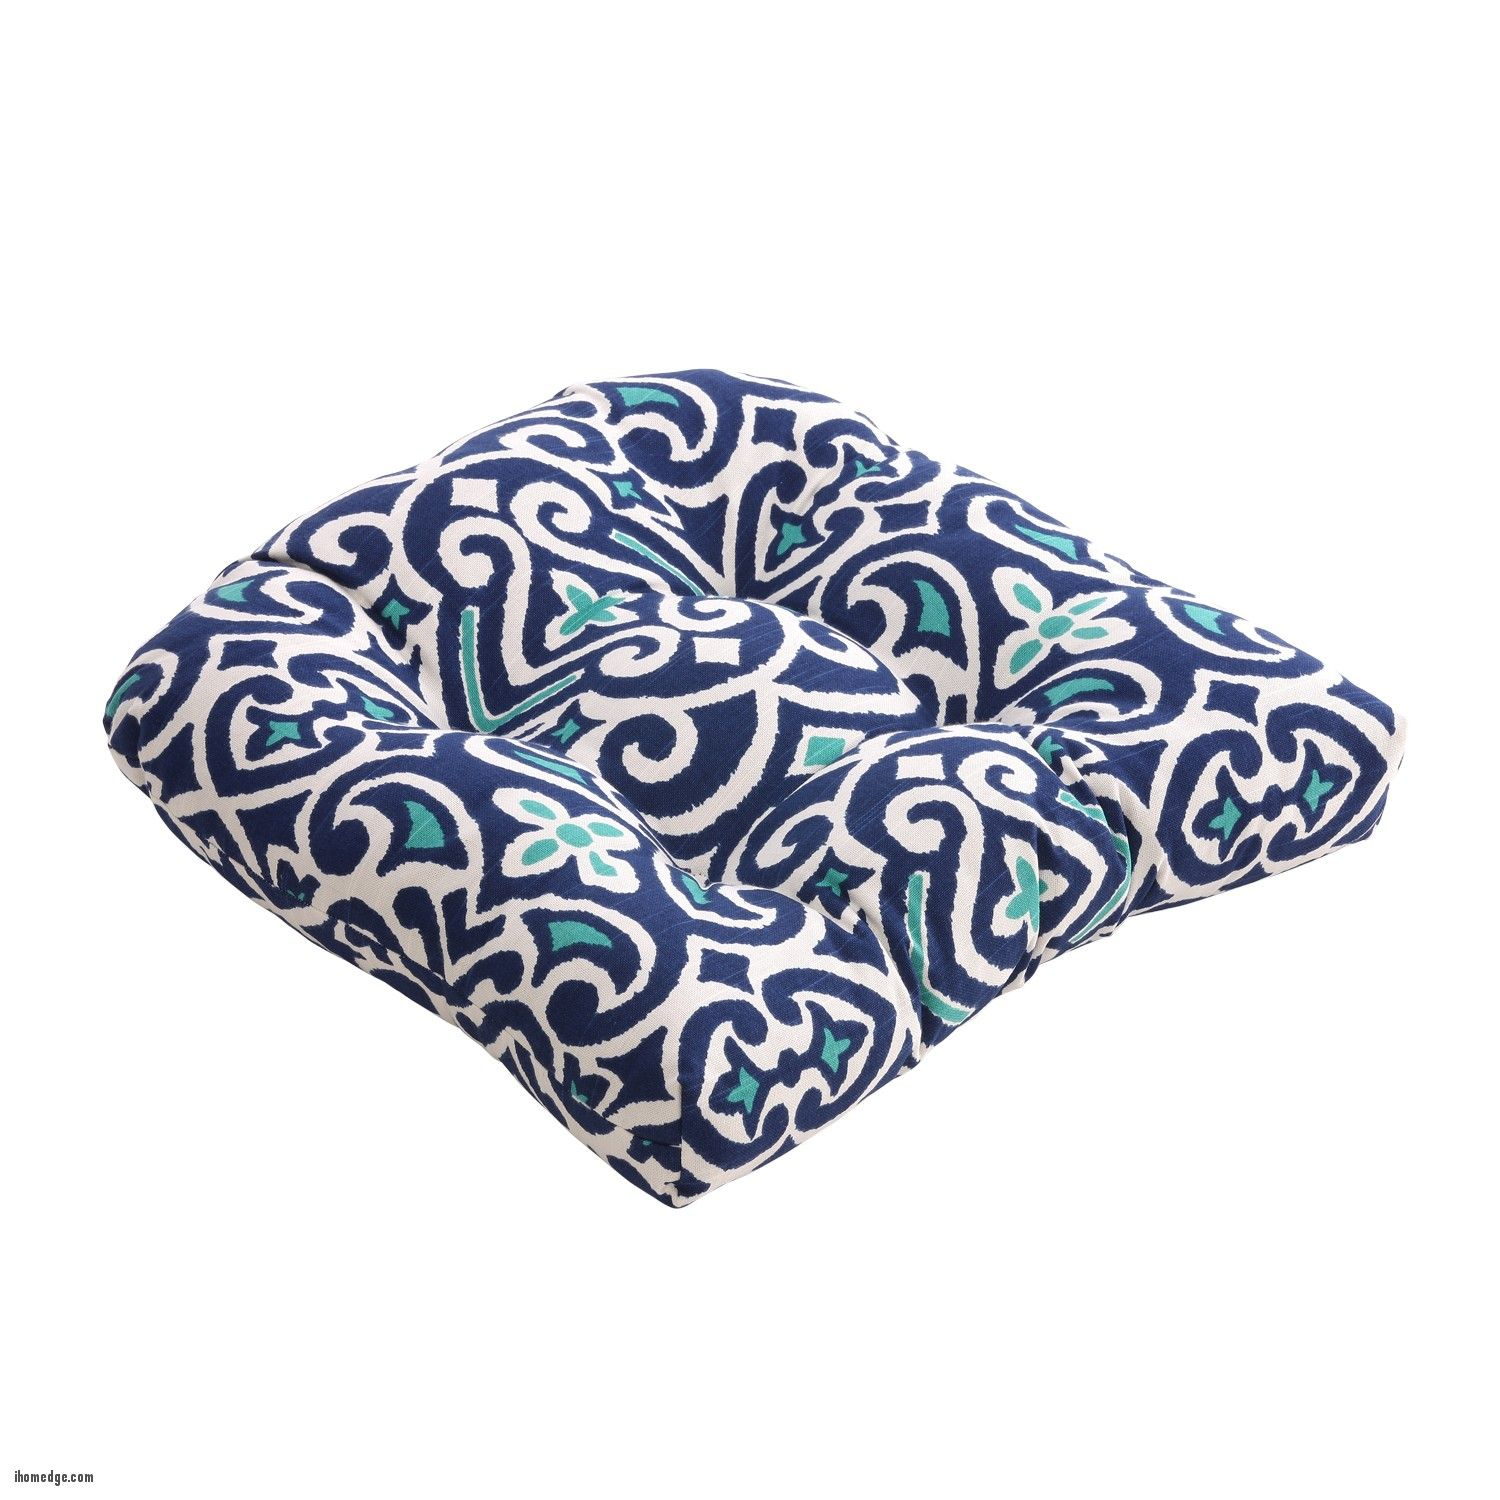 Awesome fresh outdoor chair pads pillow perfect chair cushions